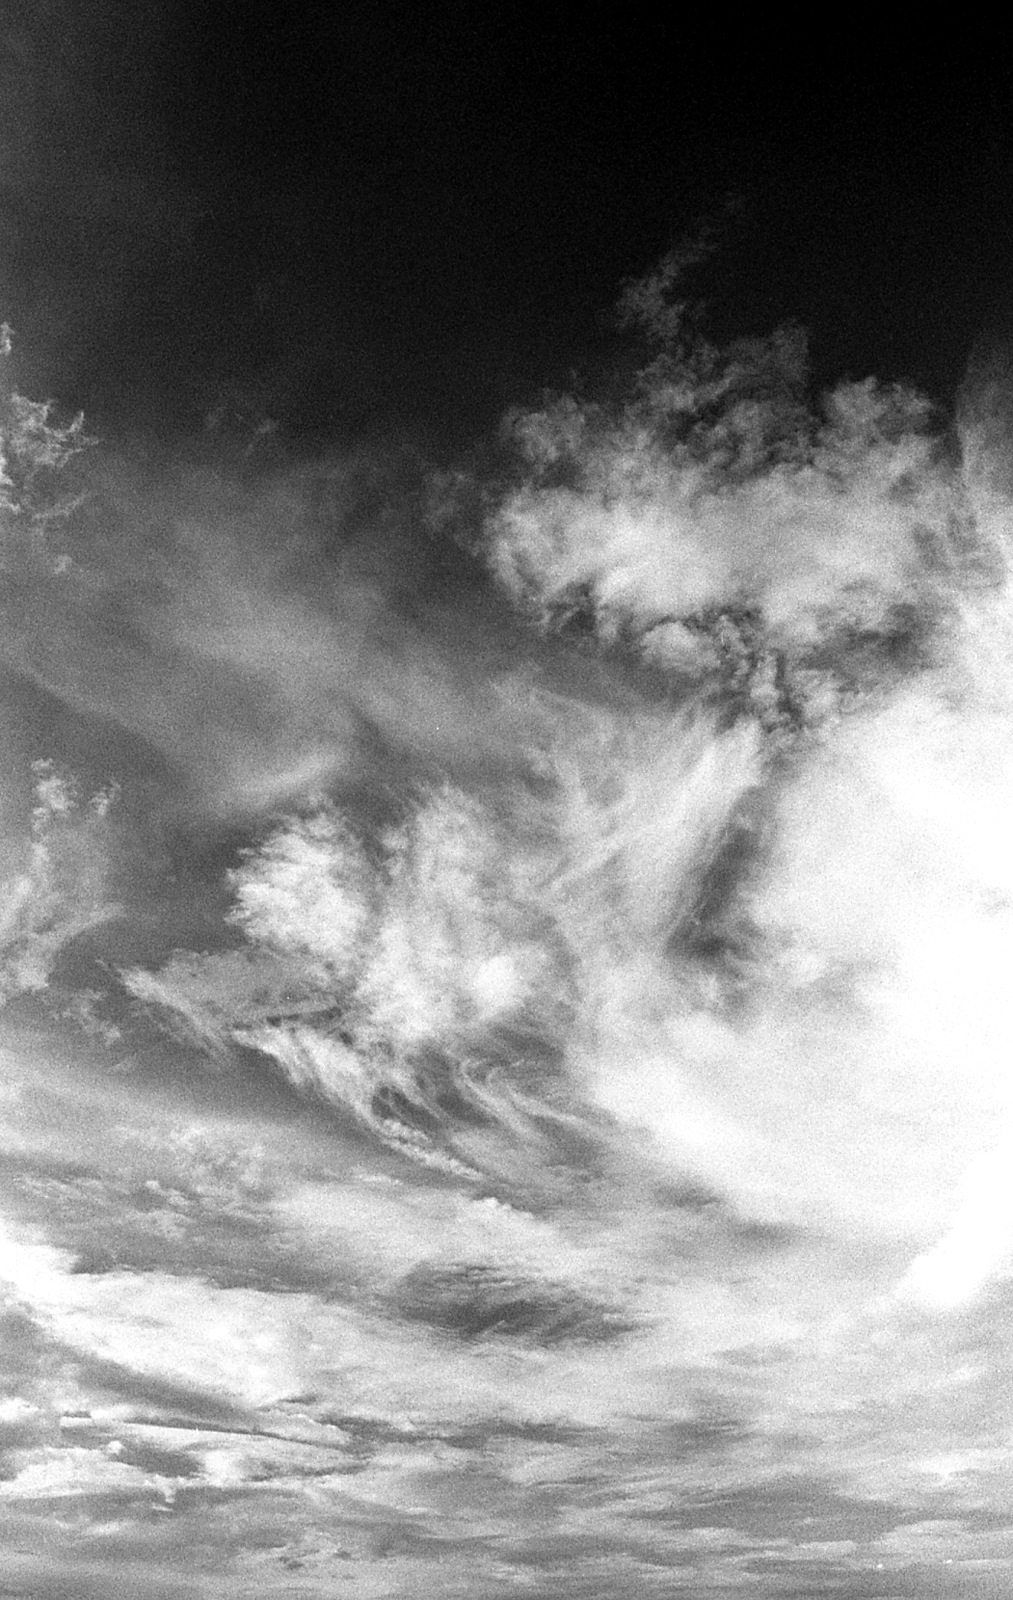 Clouds. Taken on Ilford HP5 Plus 35mm film with a Nikon N75